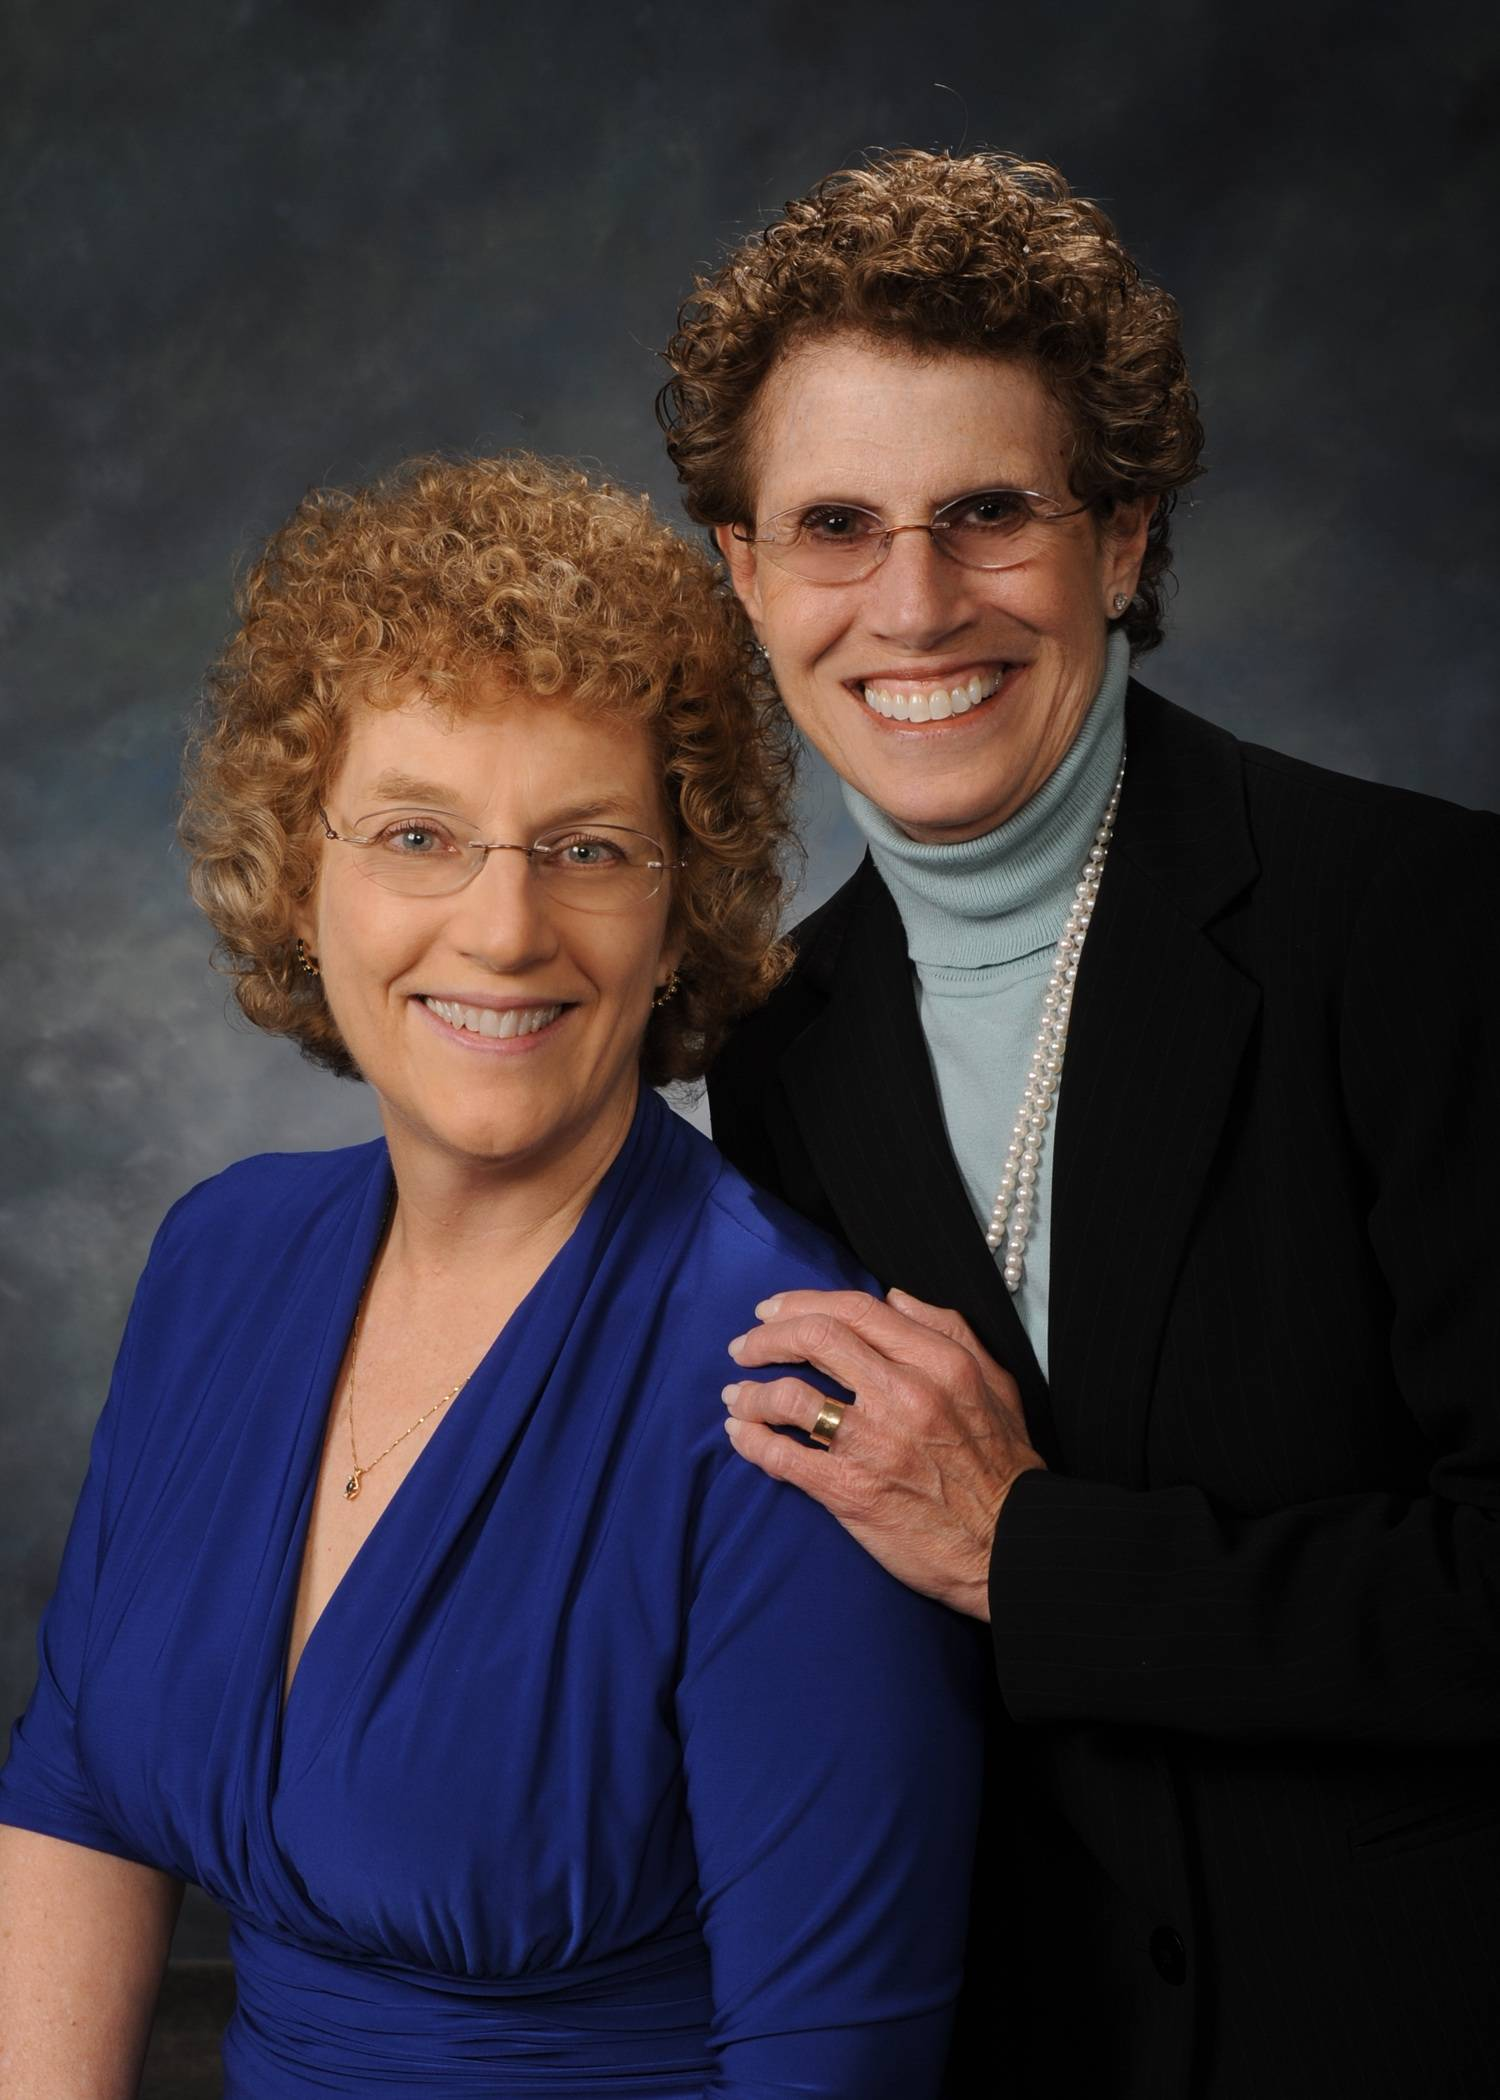 Kathy Young and Eileen Gold Kushner will discuss their book, Smart on the Inside: a True Story of Succeeding In Spite of Learning Disabilities, during a May 15 program at the Ela Area Public Library District.